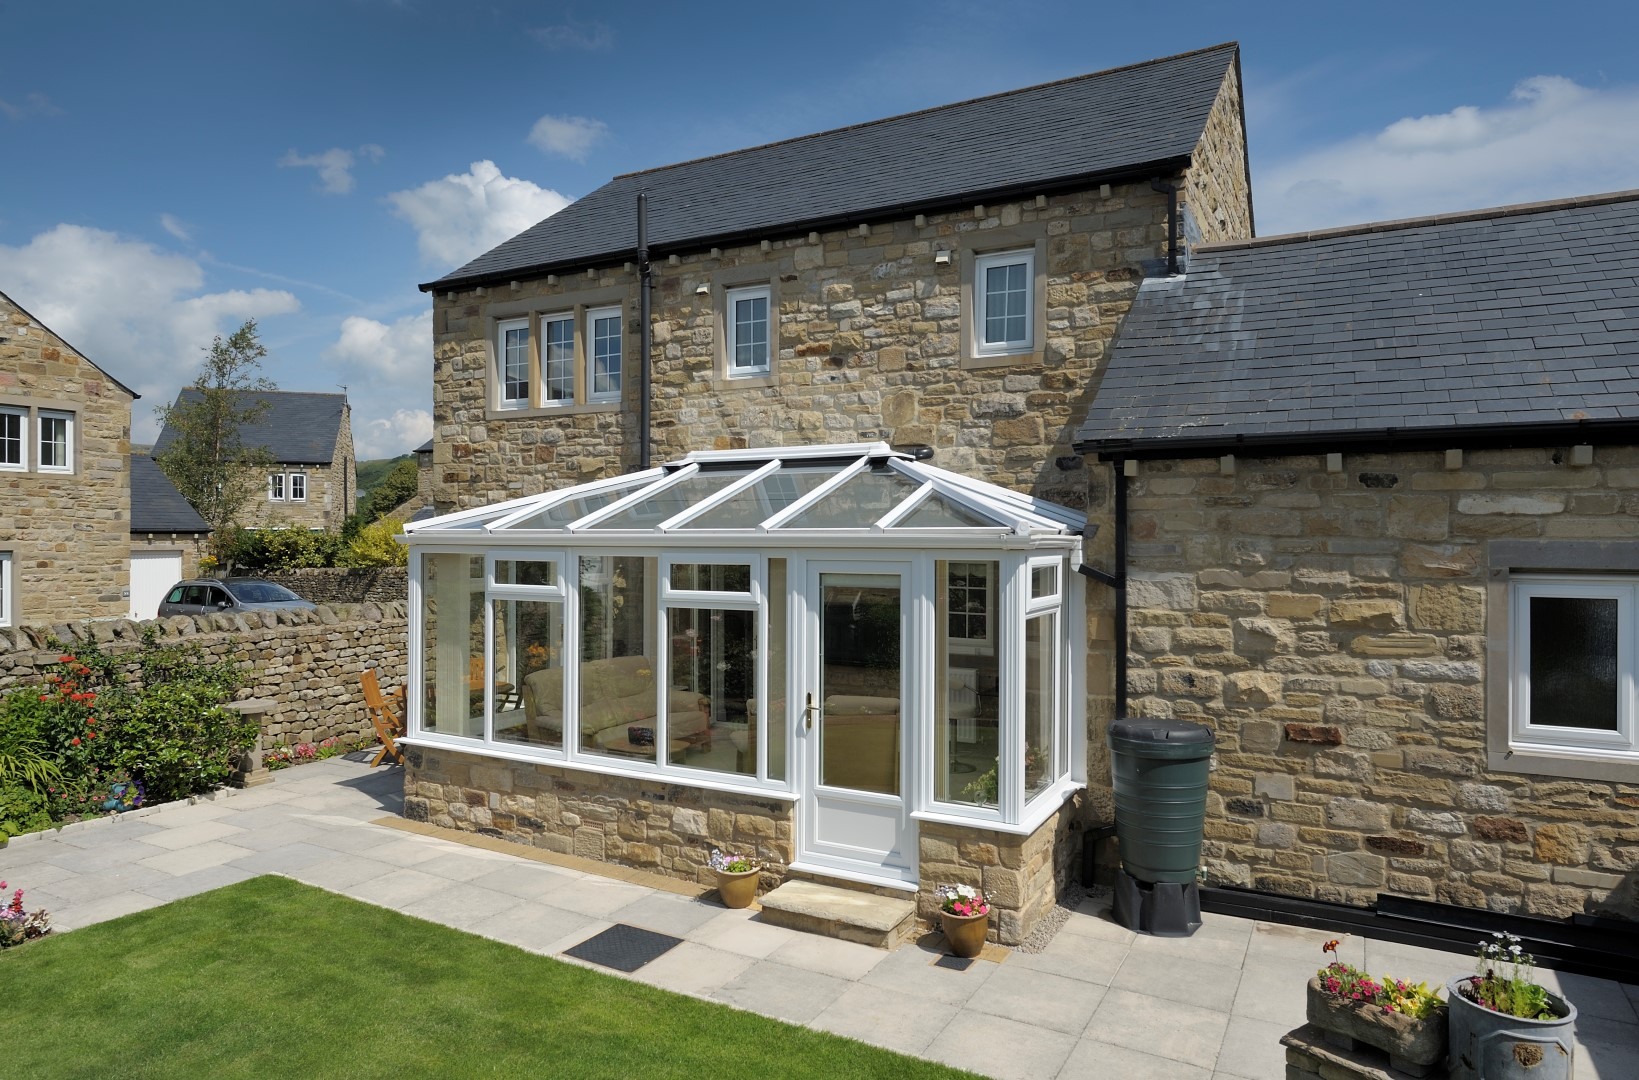 Ultraframe roof, Pilkington Activ